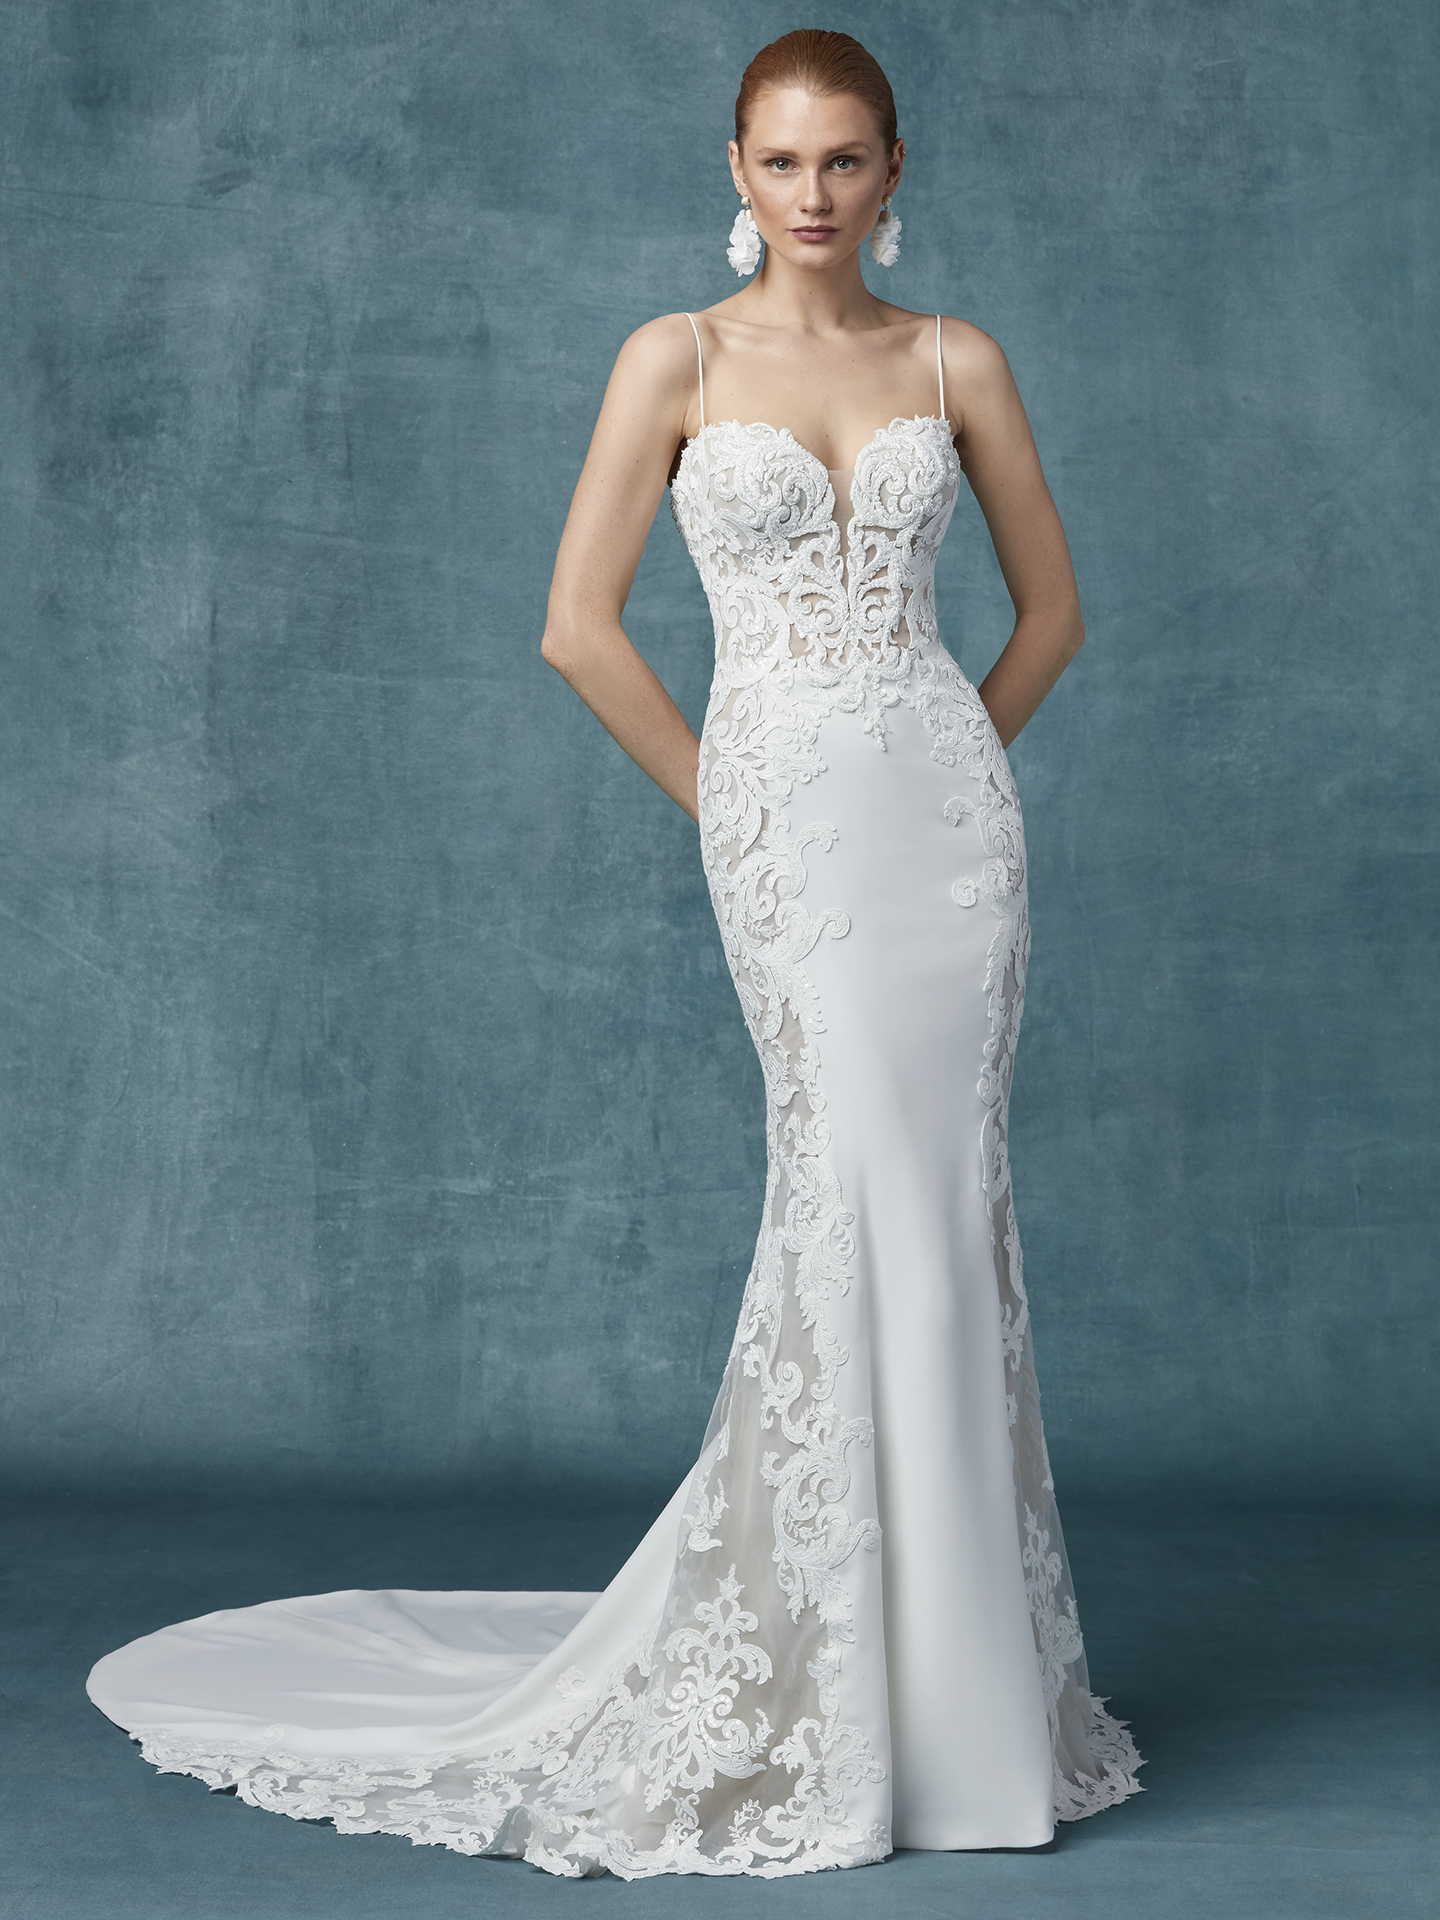 Maggie Sottero - Darshana - Front View